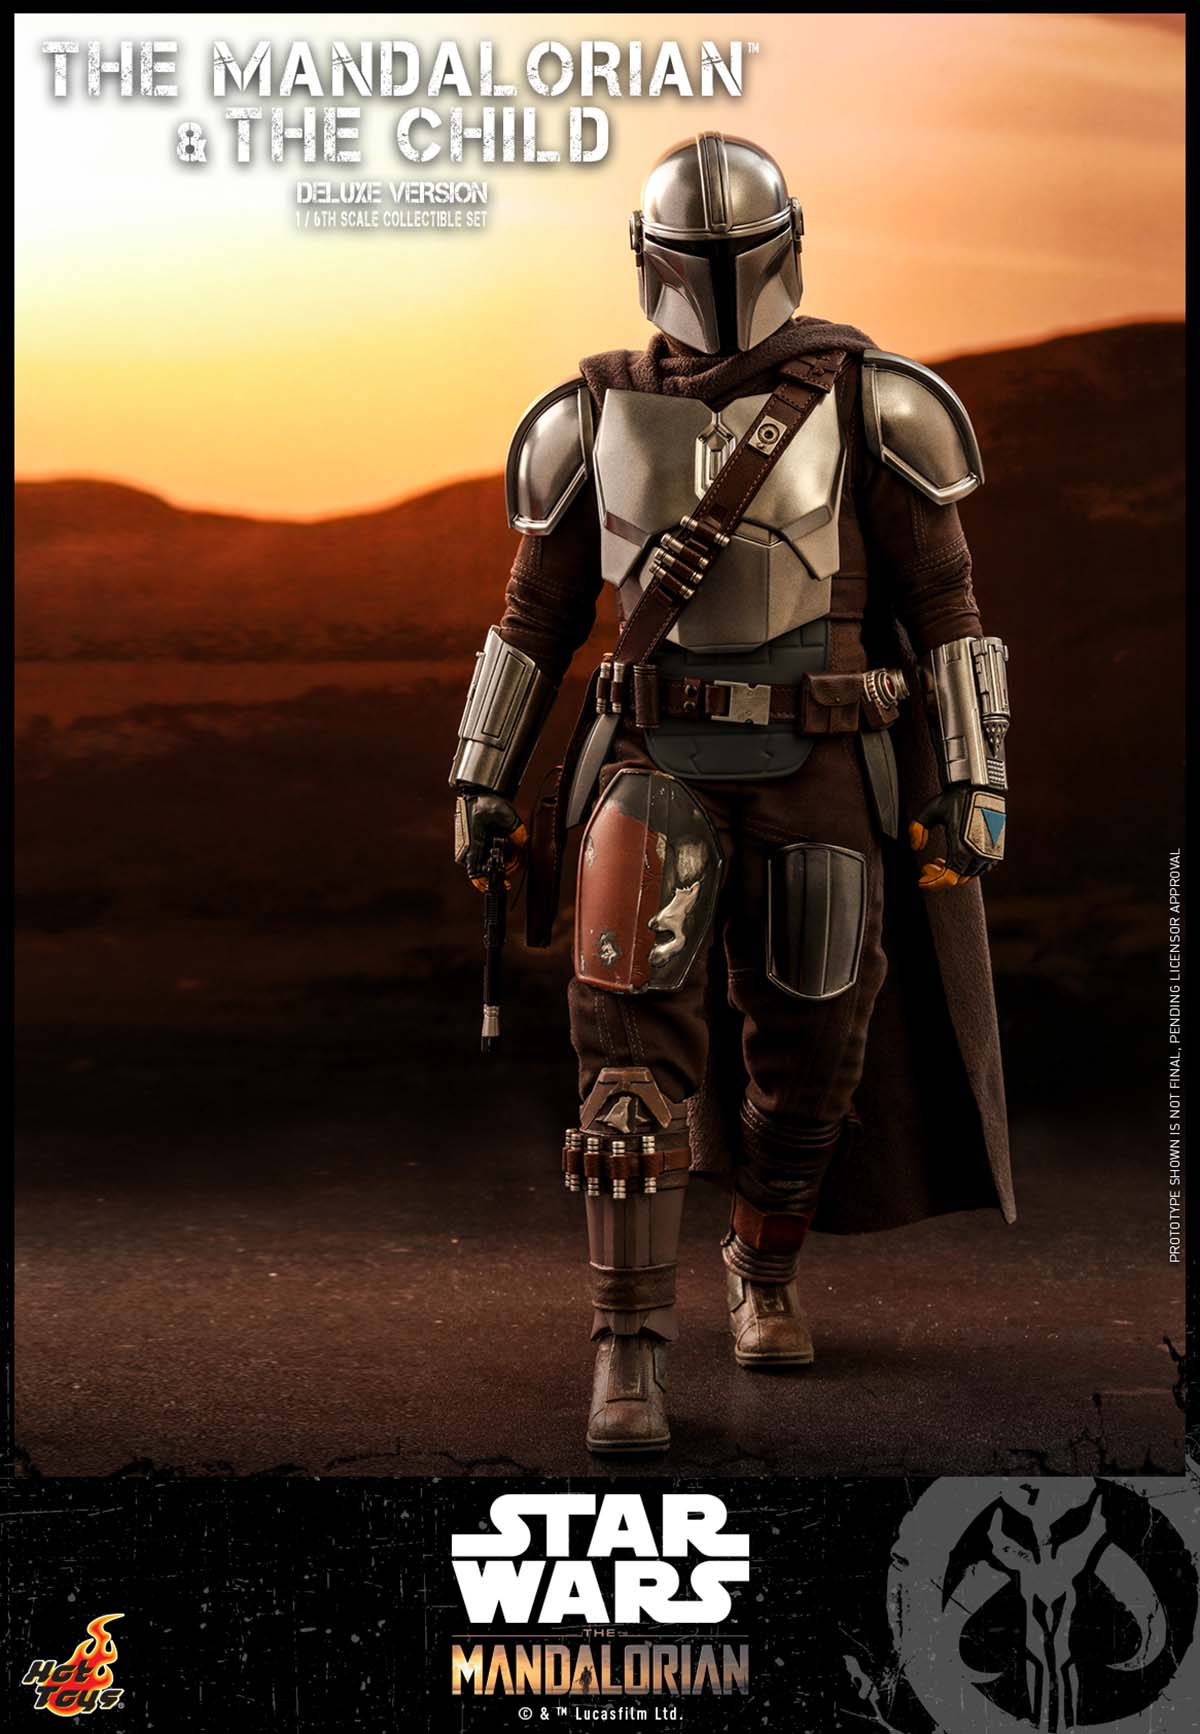 hot-toys-stm-mandalorian-and-child-collectible-set-deluxe_pr5